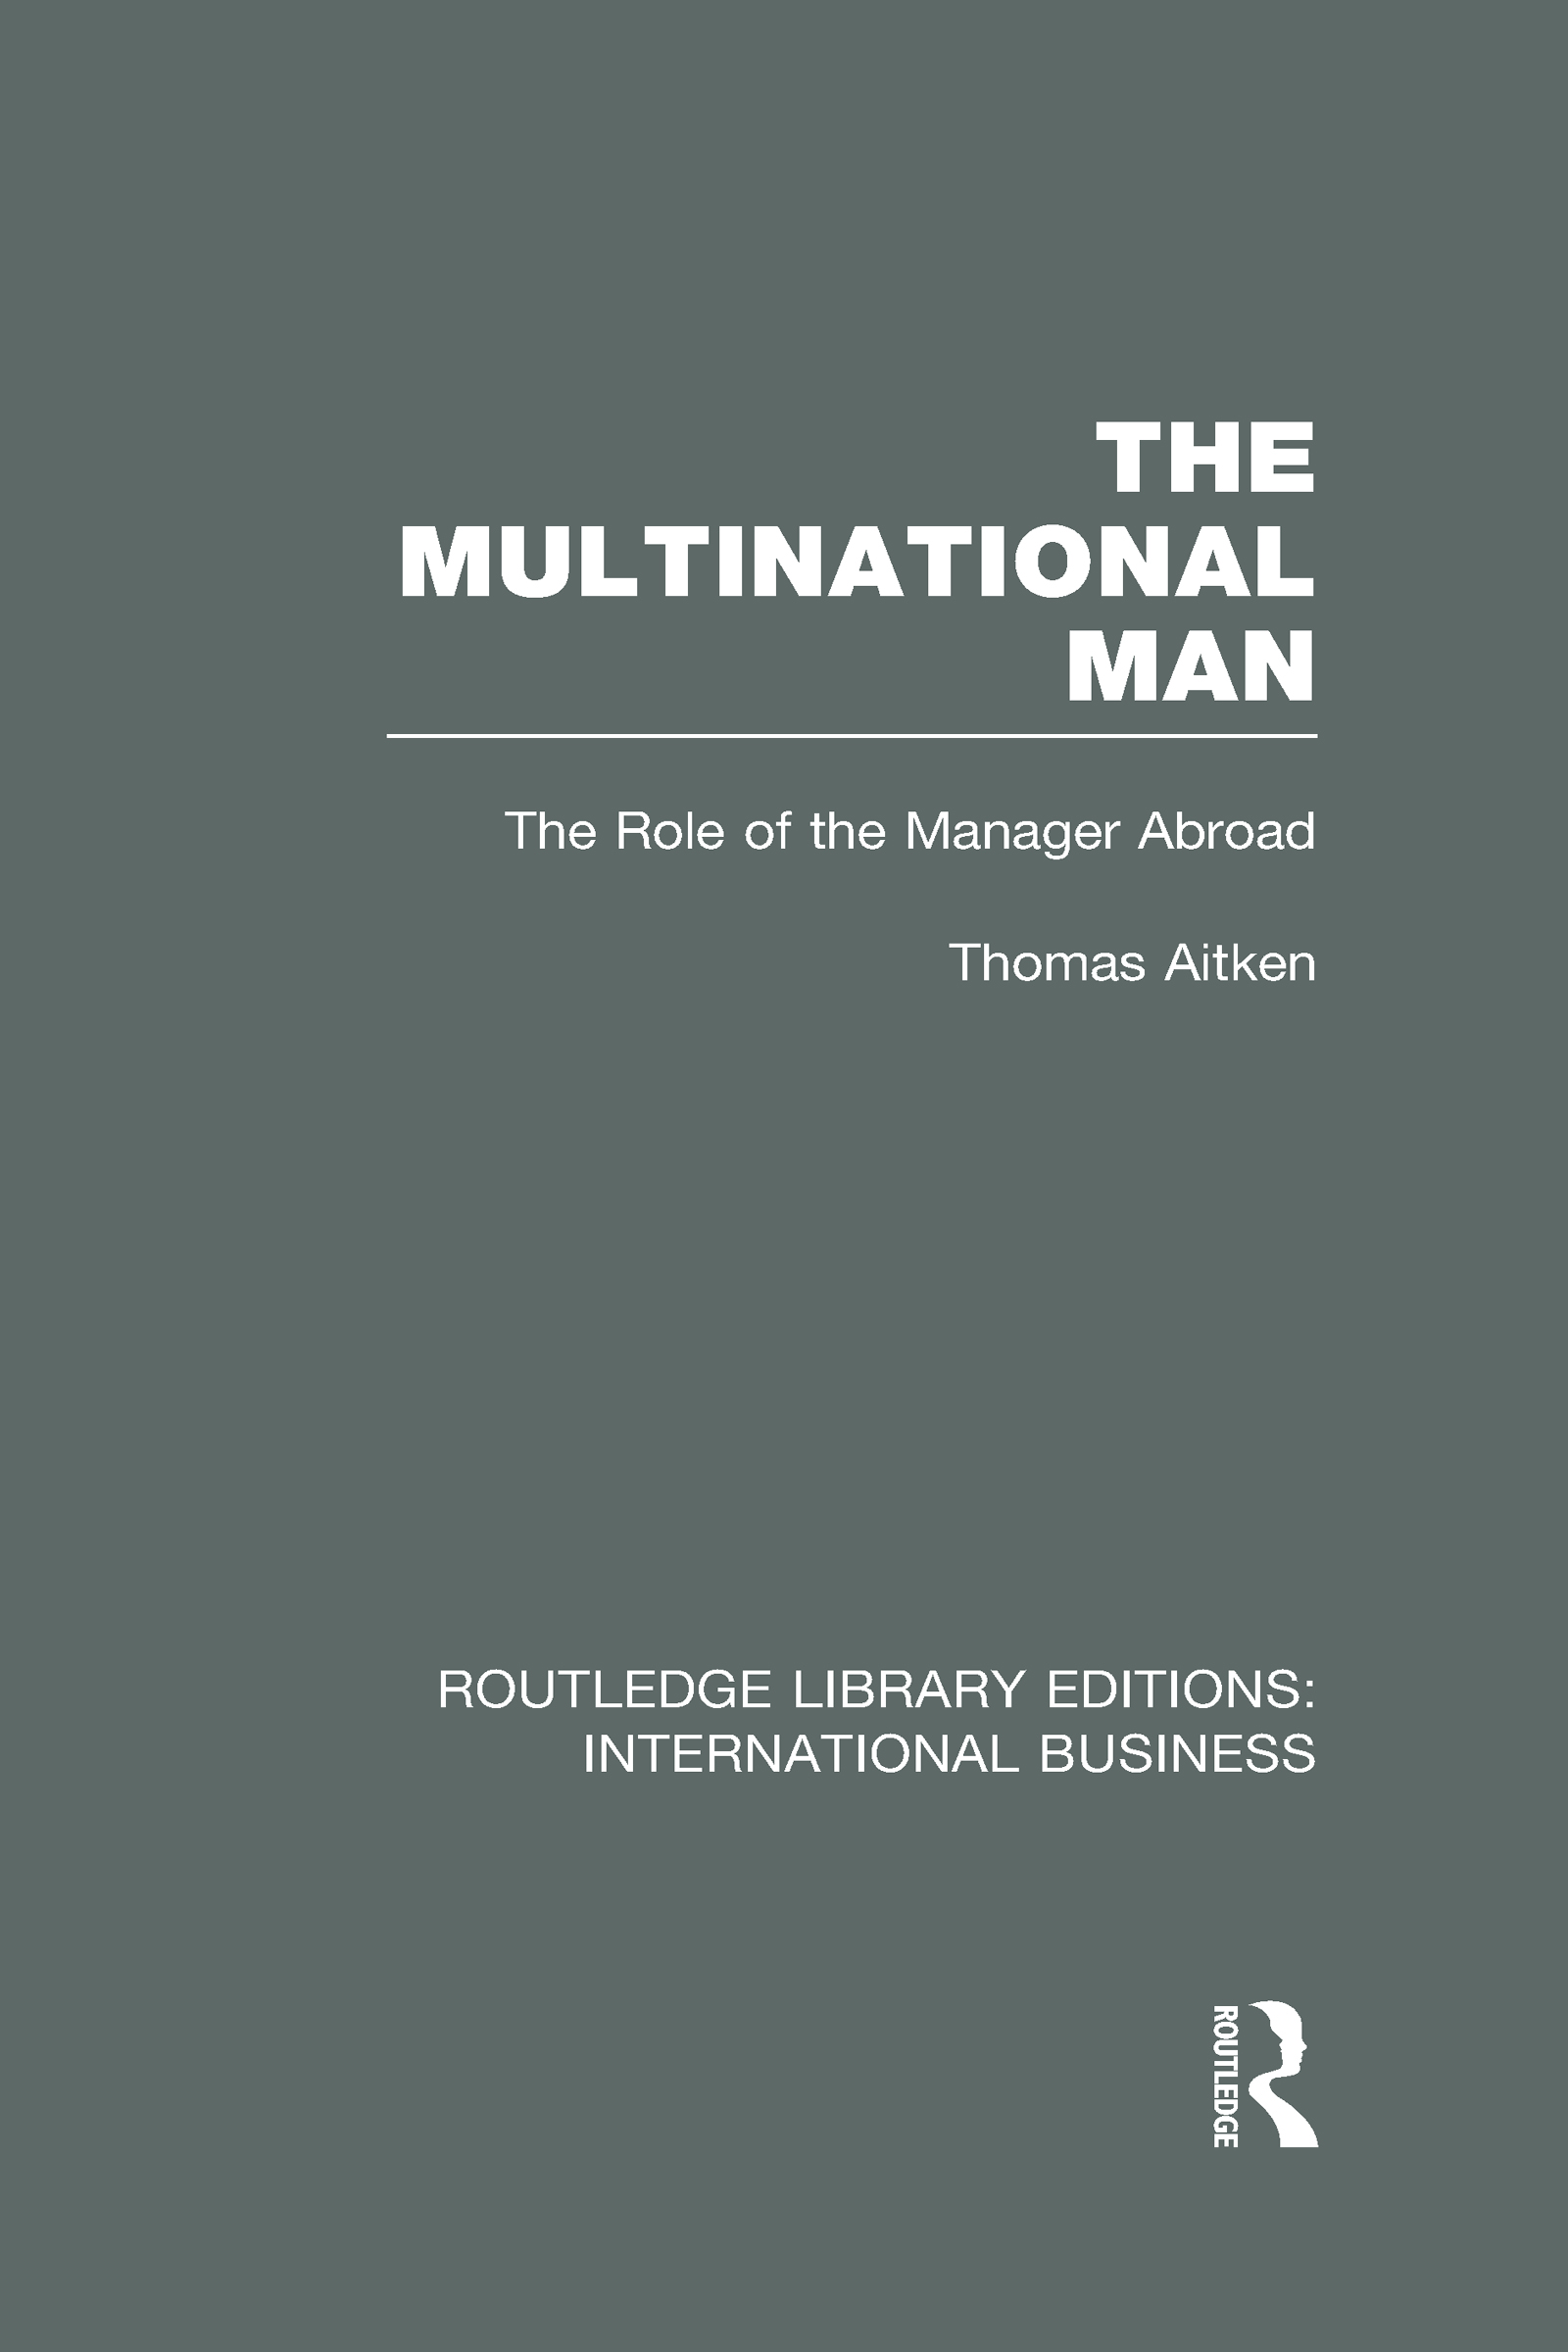 The Multinational Man (RLE International Business): The Role of the Manager Abroad (Hardback) book cover